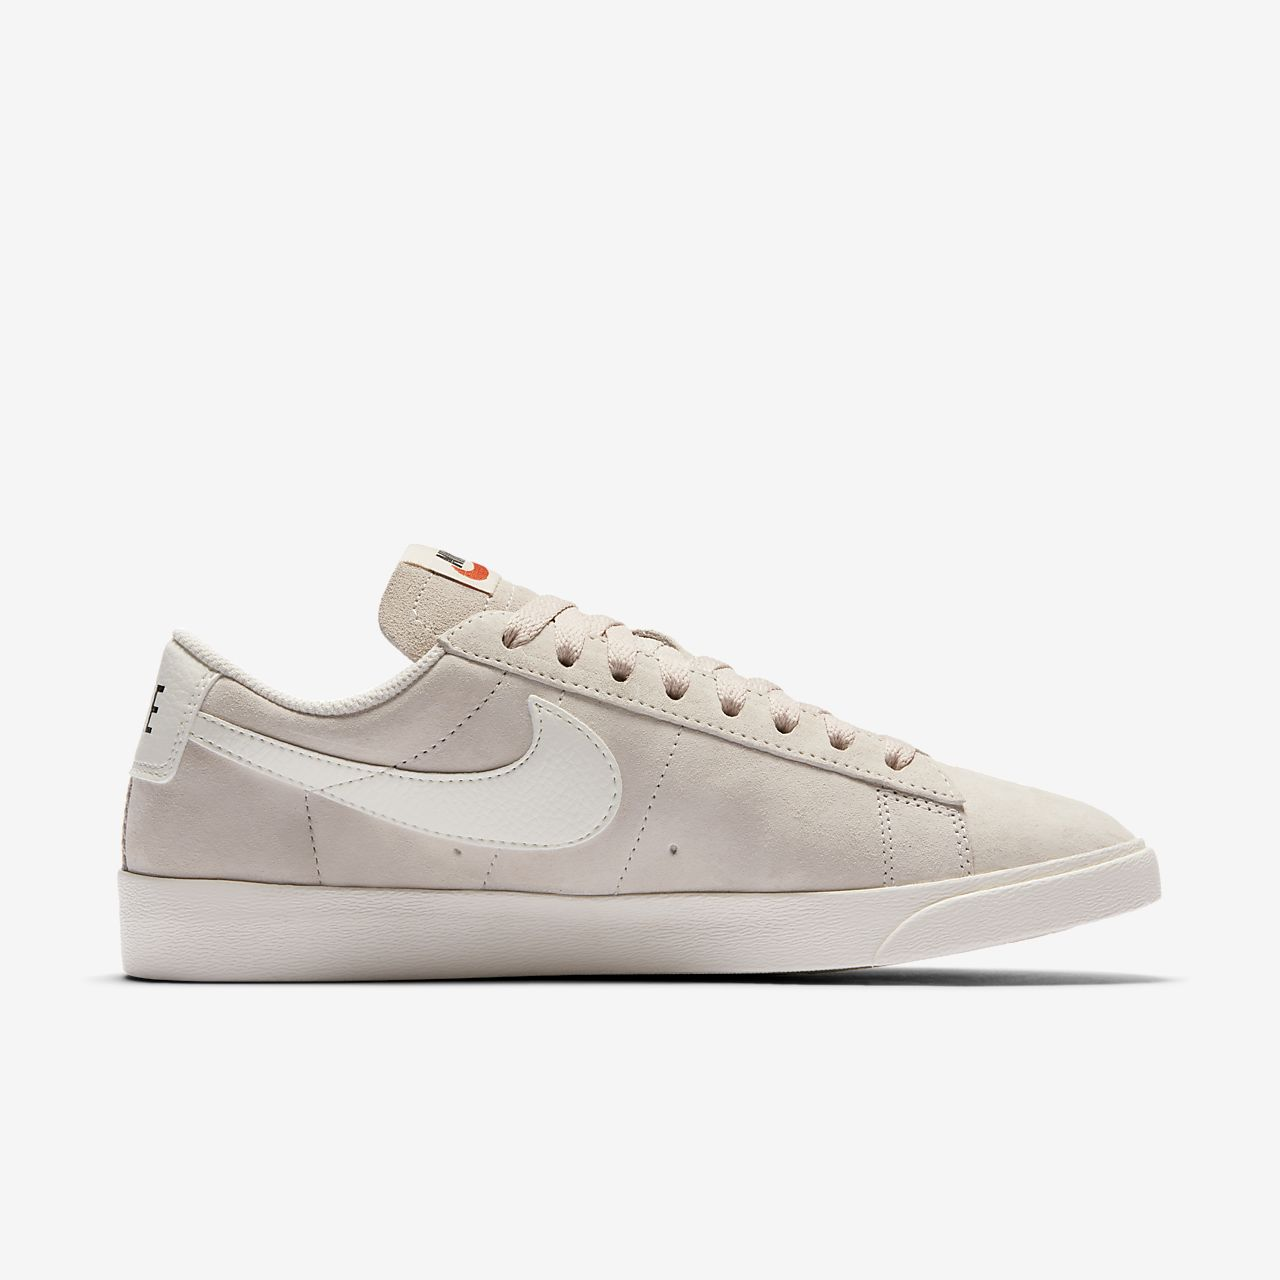 ... Nike Blazer Low Women's Shoe